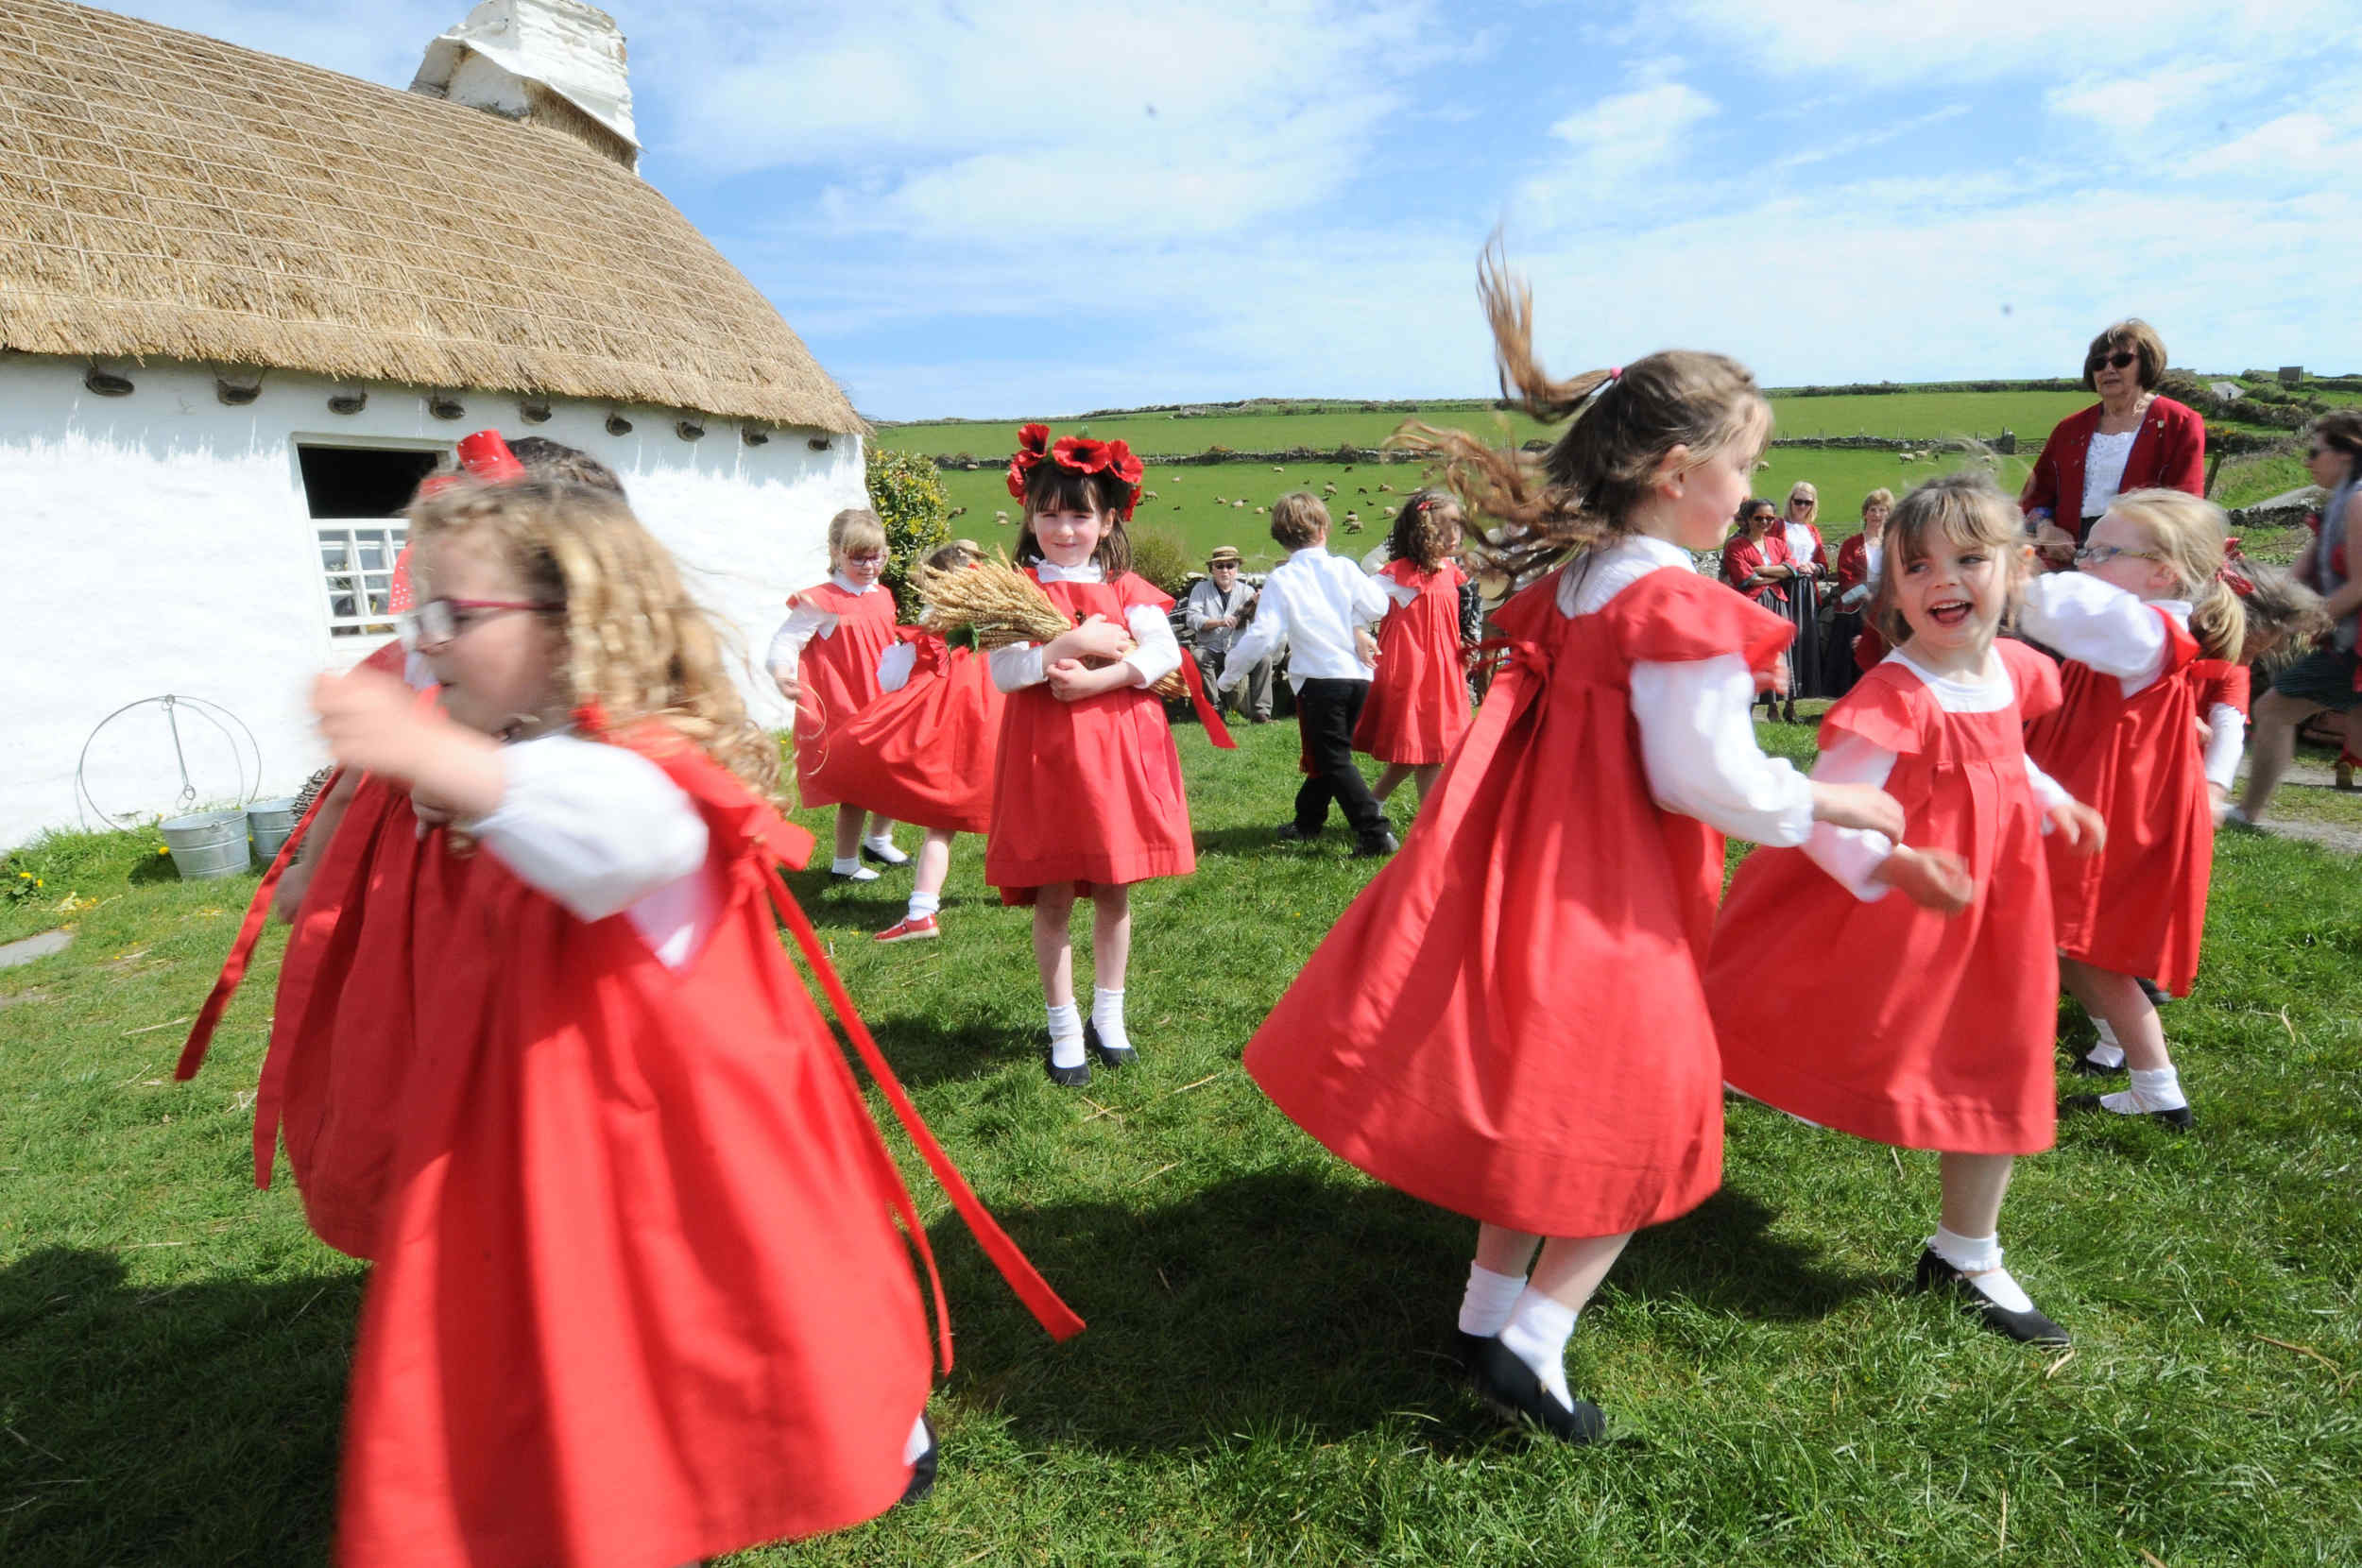 Dance group Perree Bane perform outside Harry Kelly's Cottage in Cregneash as part of Laa Boaldyn, or Manx May Day